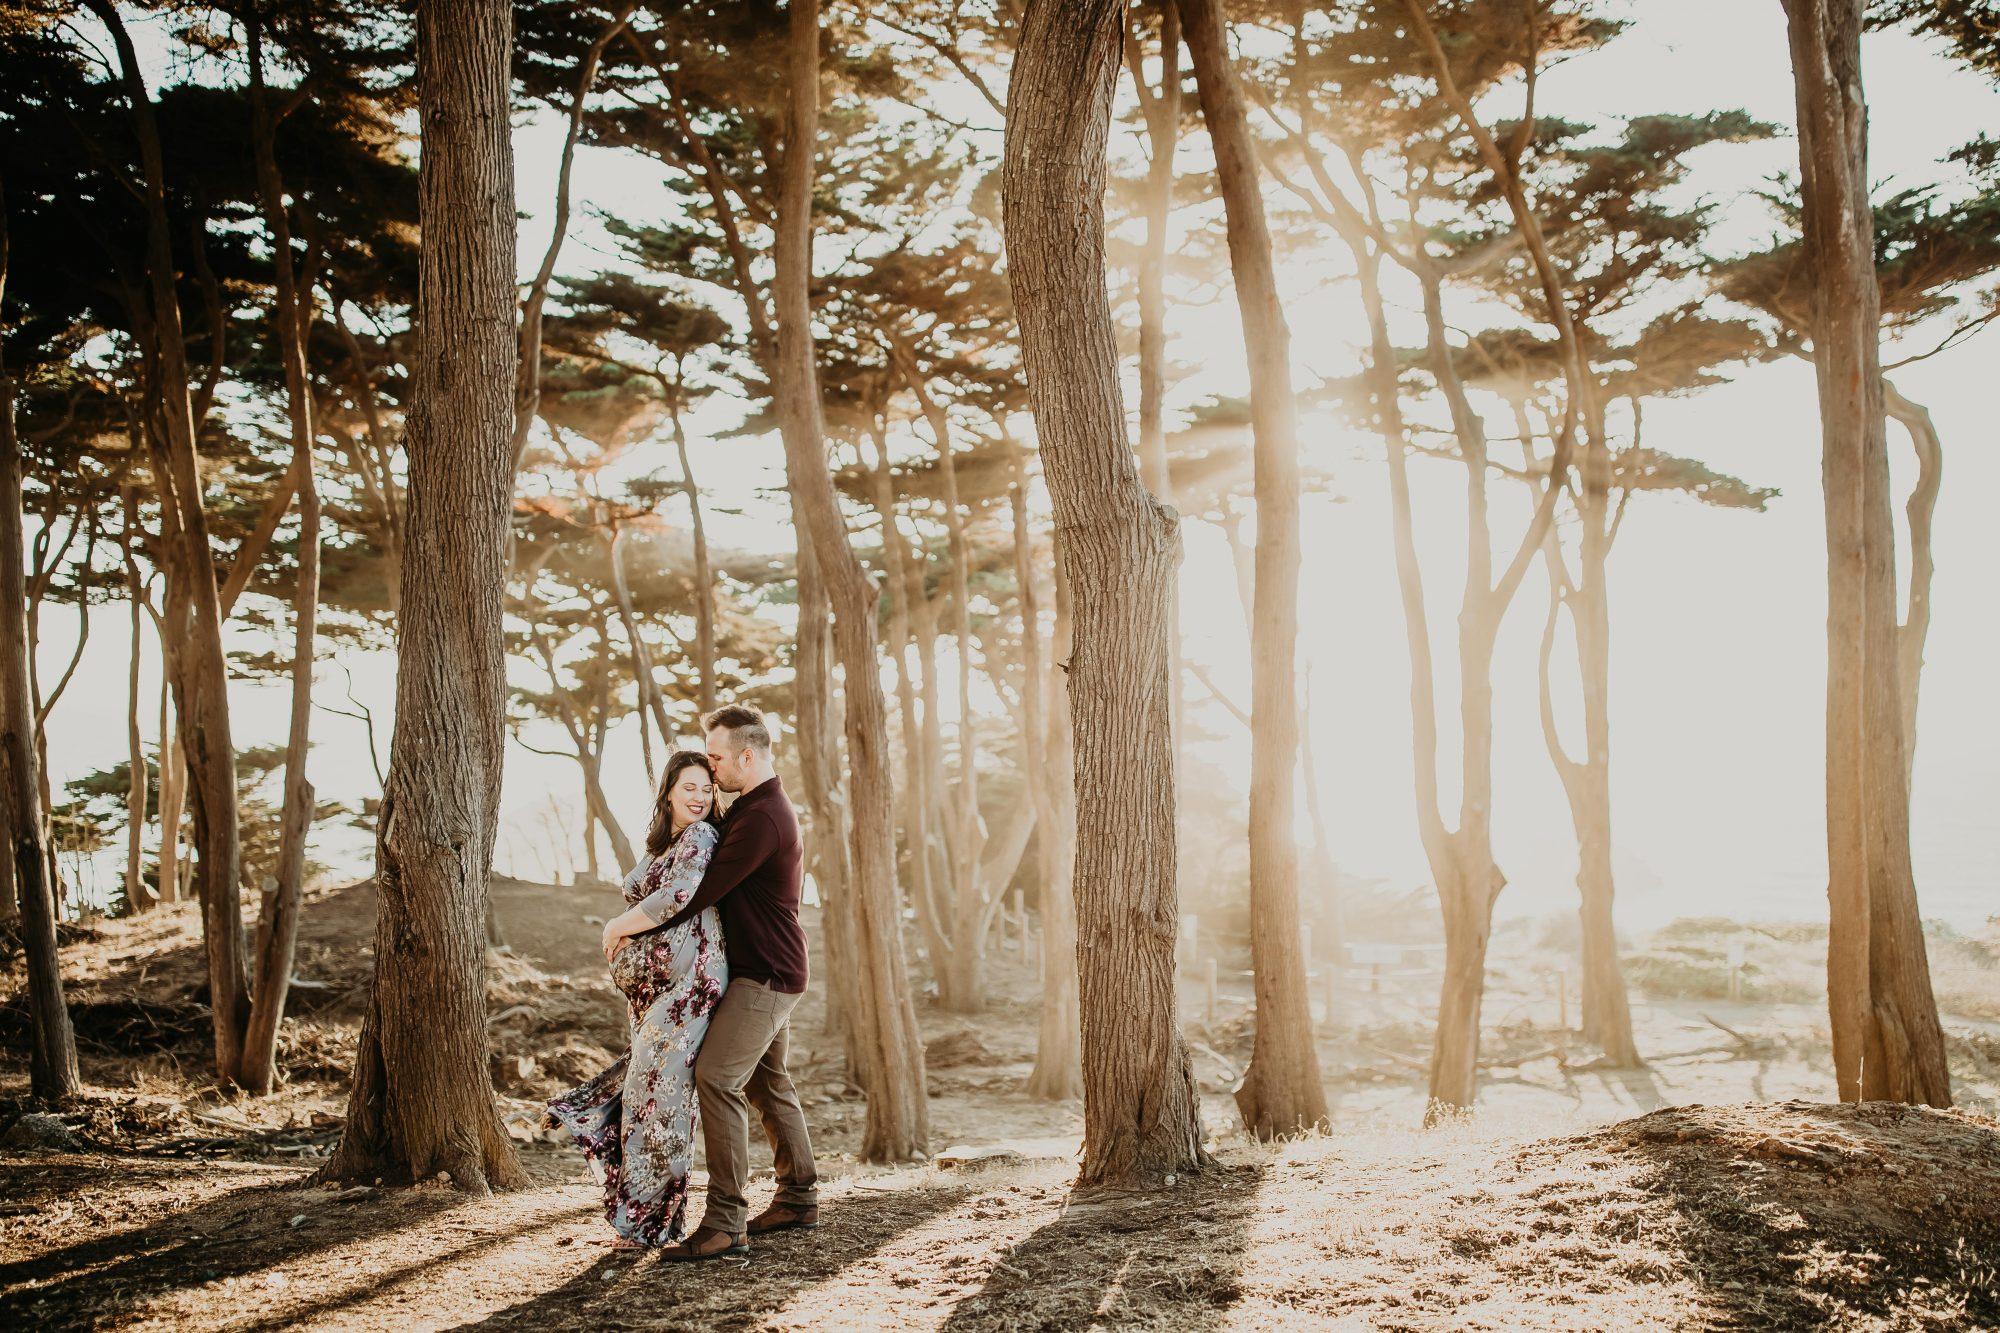 san-francisco-maternity-photographer - 3